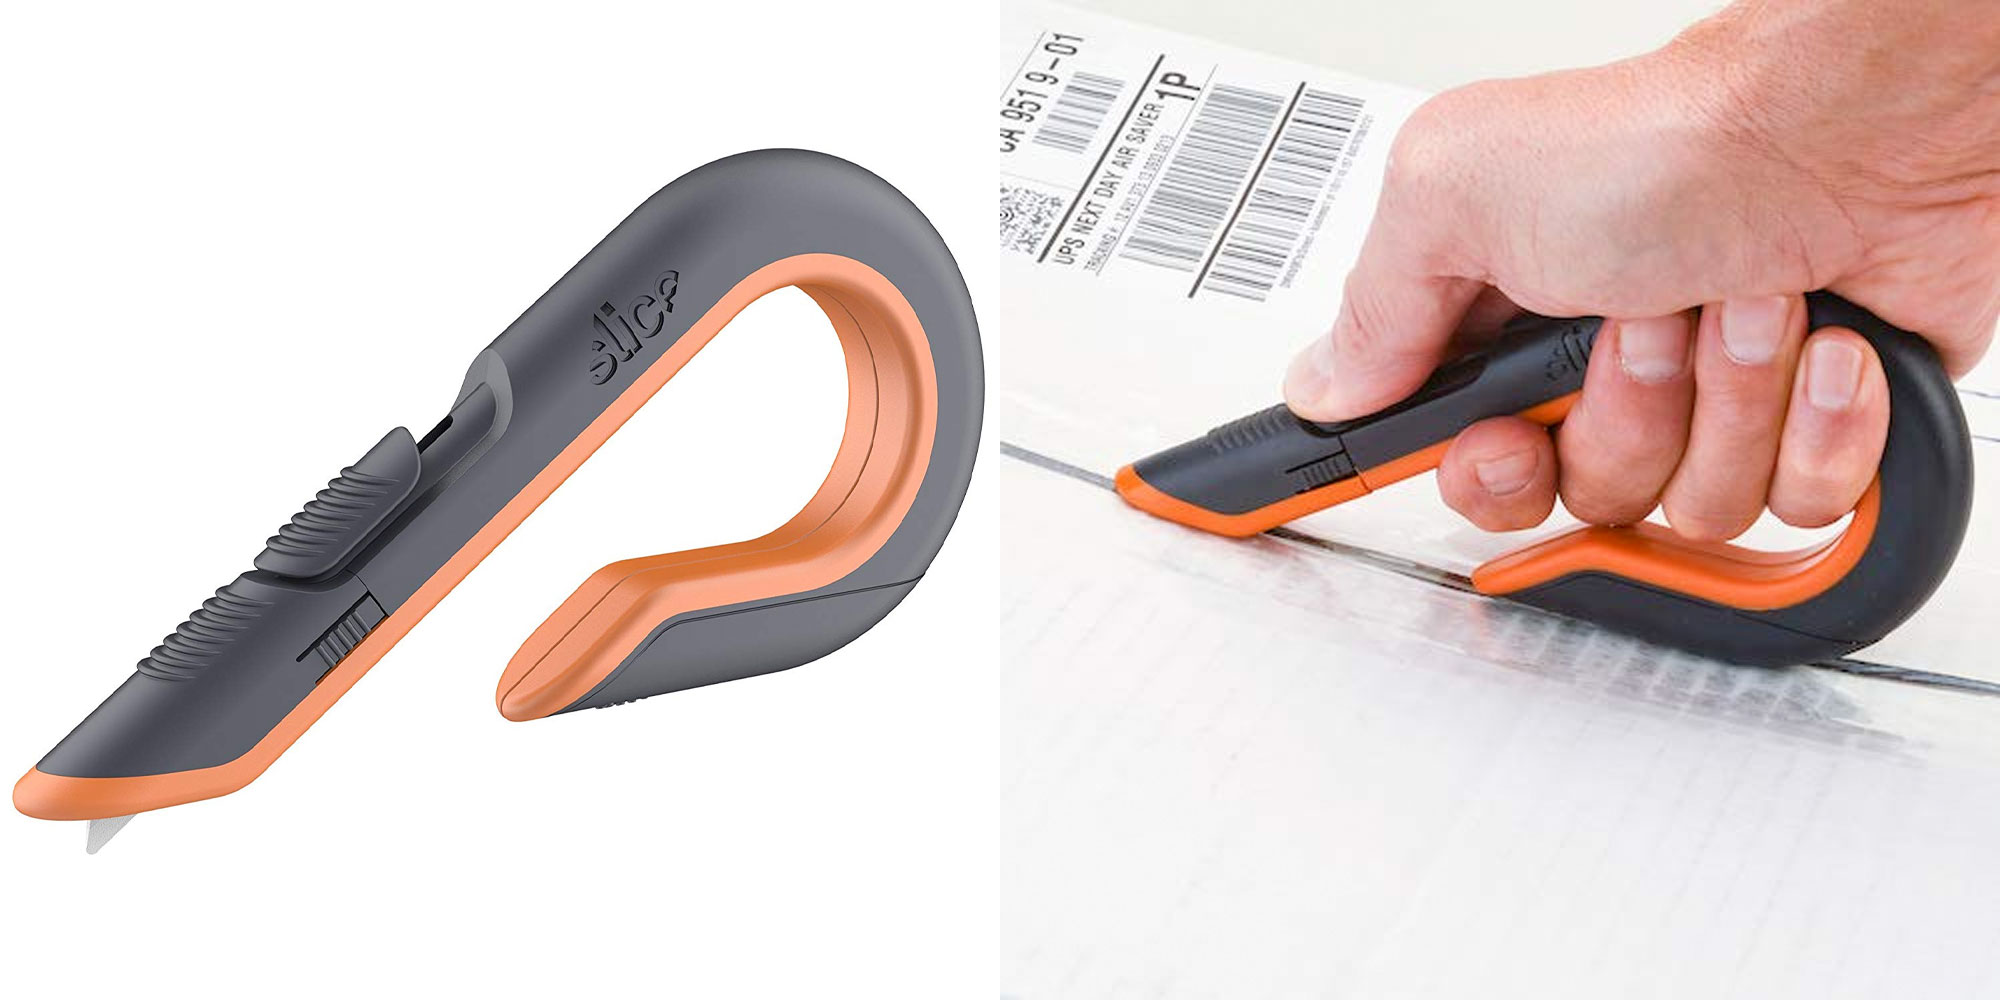 For $12 Prime shipped, this ceramic box cutter automatically retracts its blade when not in use